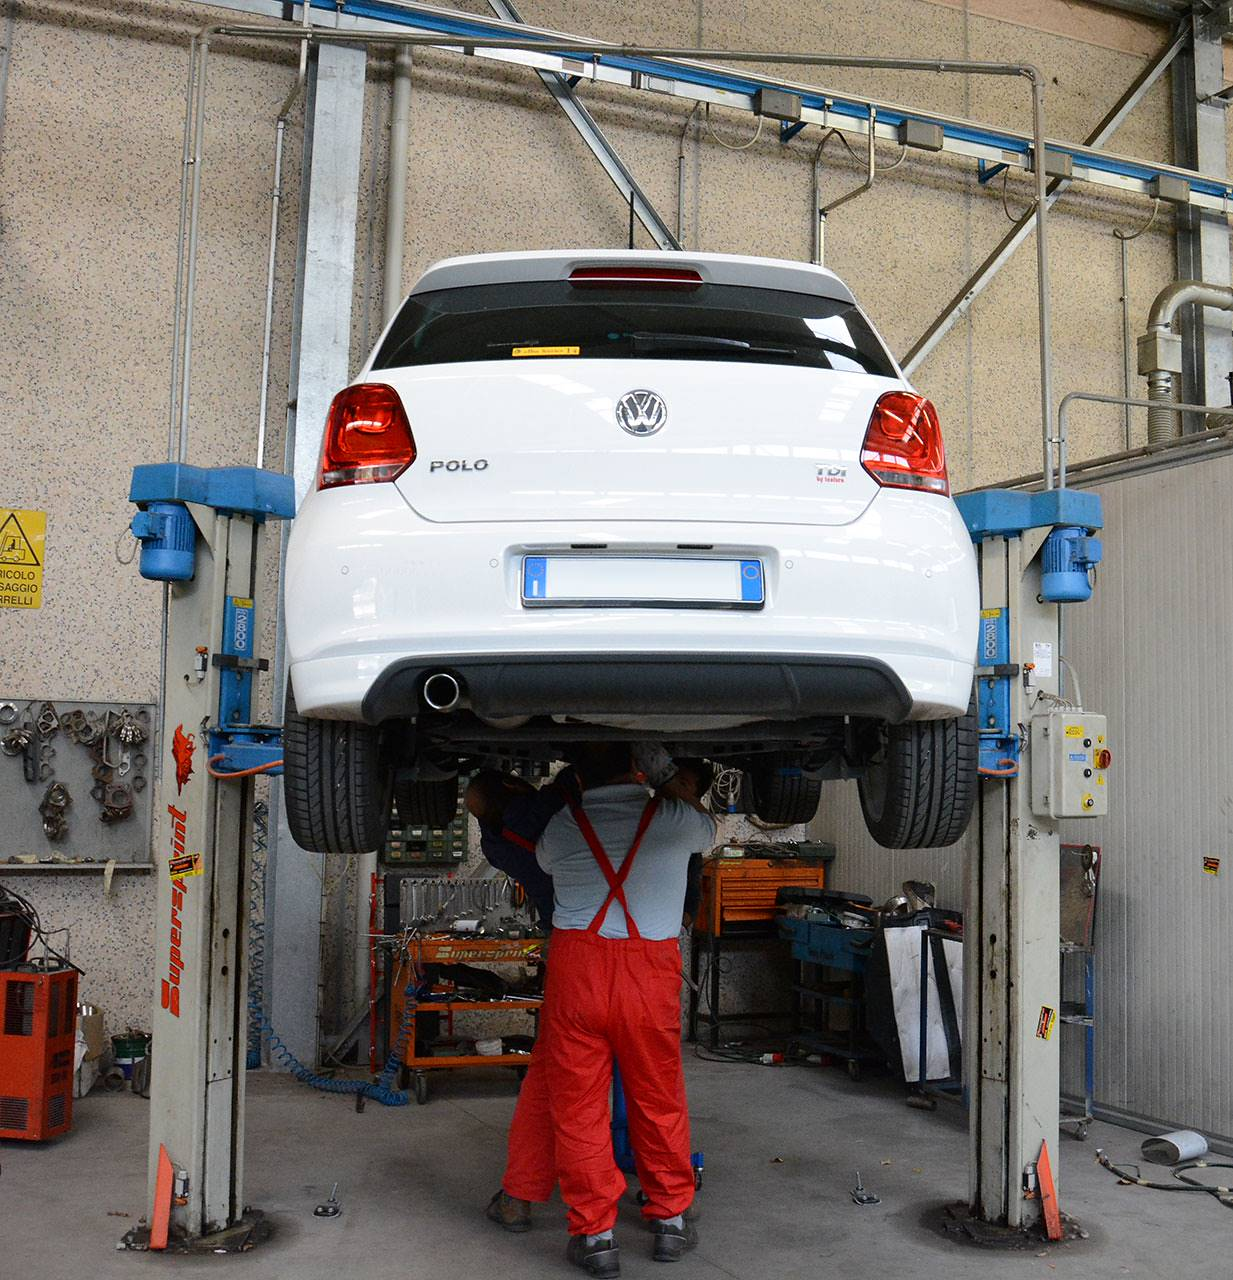 Development of turbo downpipe for DPF replacement on Polo 1.6 TDI